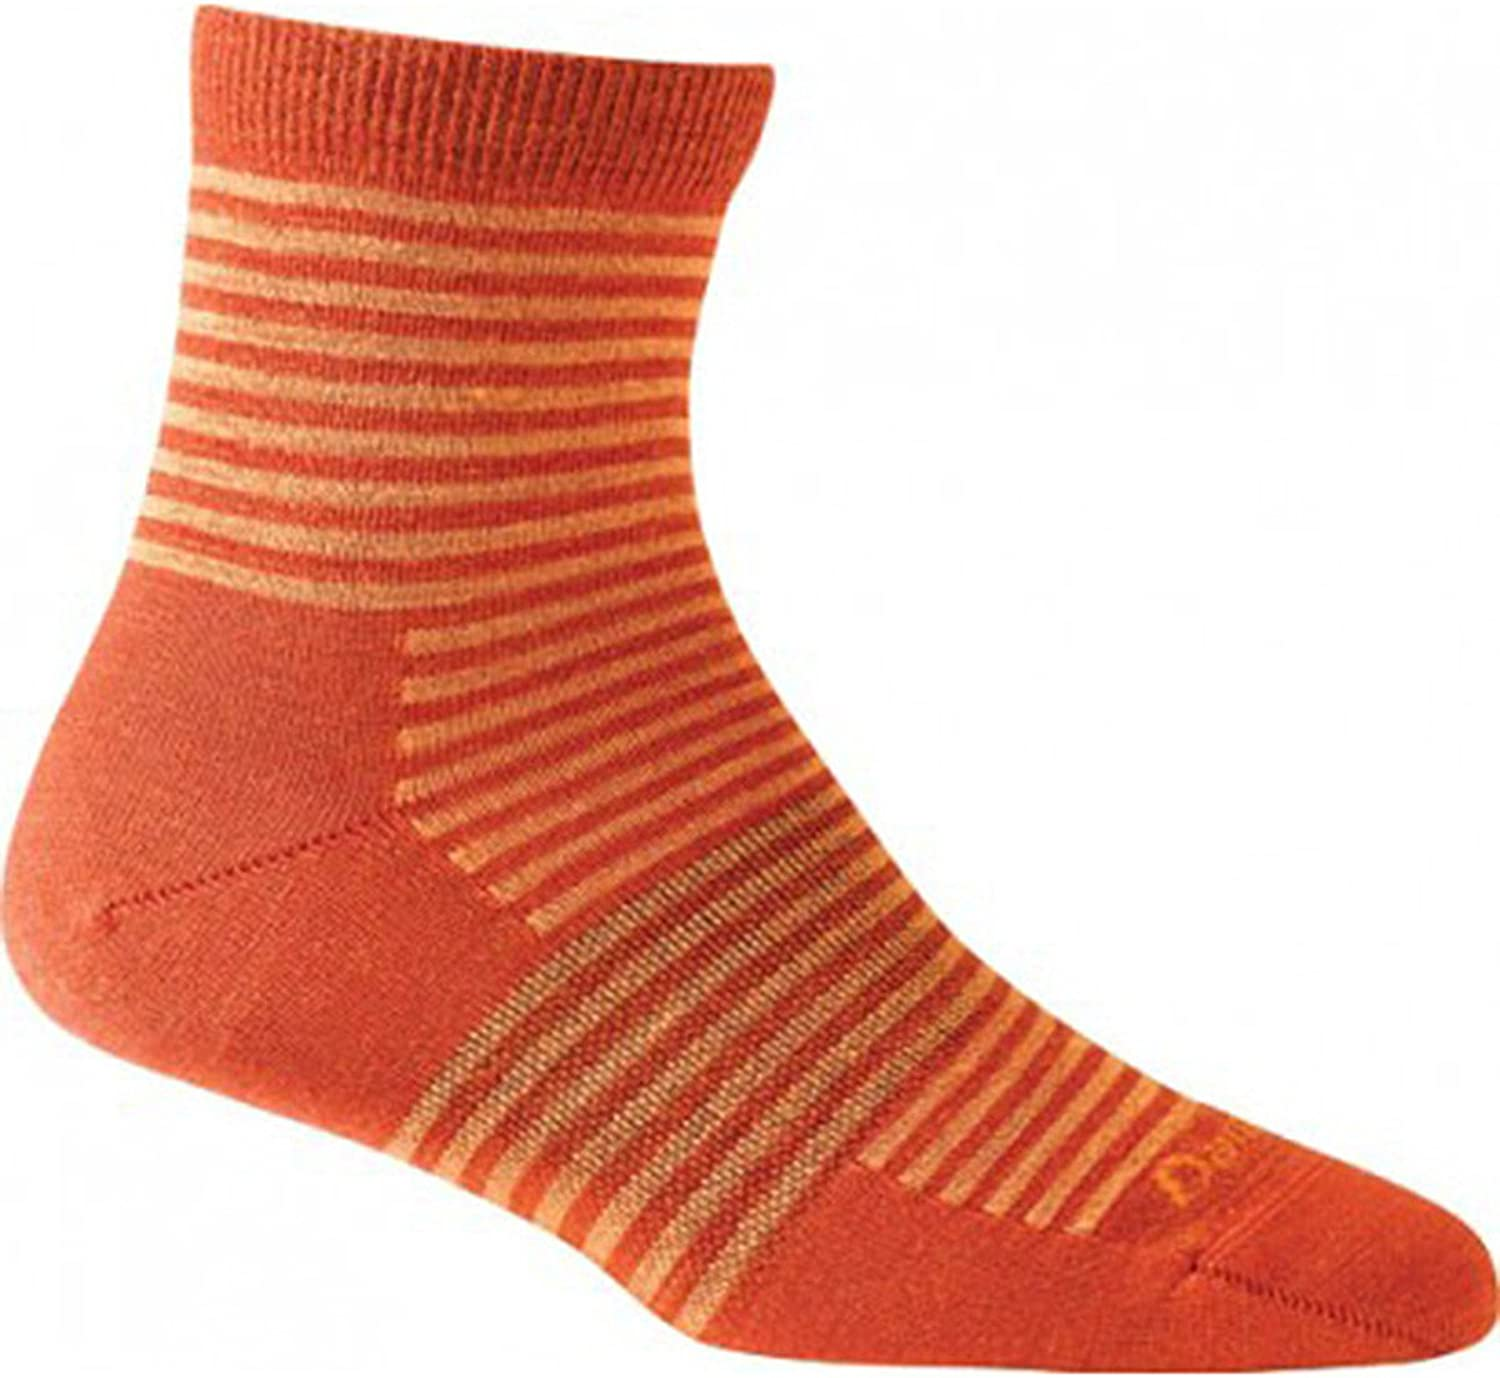 Darn Tough Women's Merino Wool Mini Stripe Shorty Light Cushion Lifestyle Socks